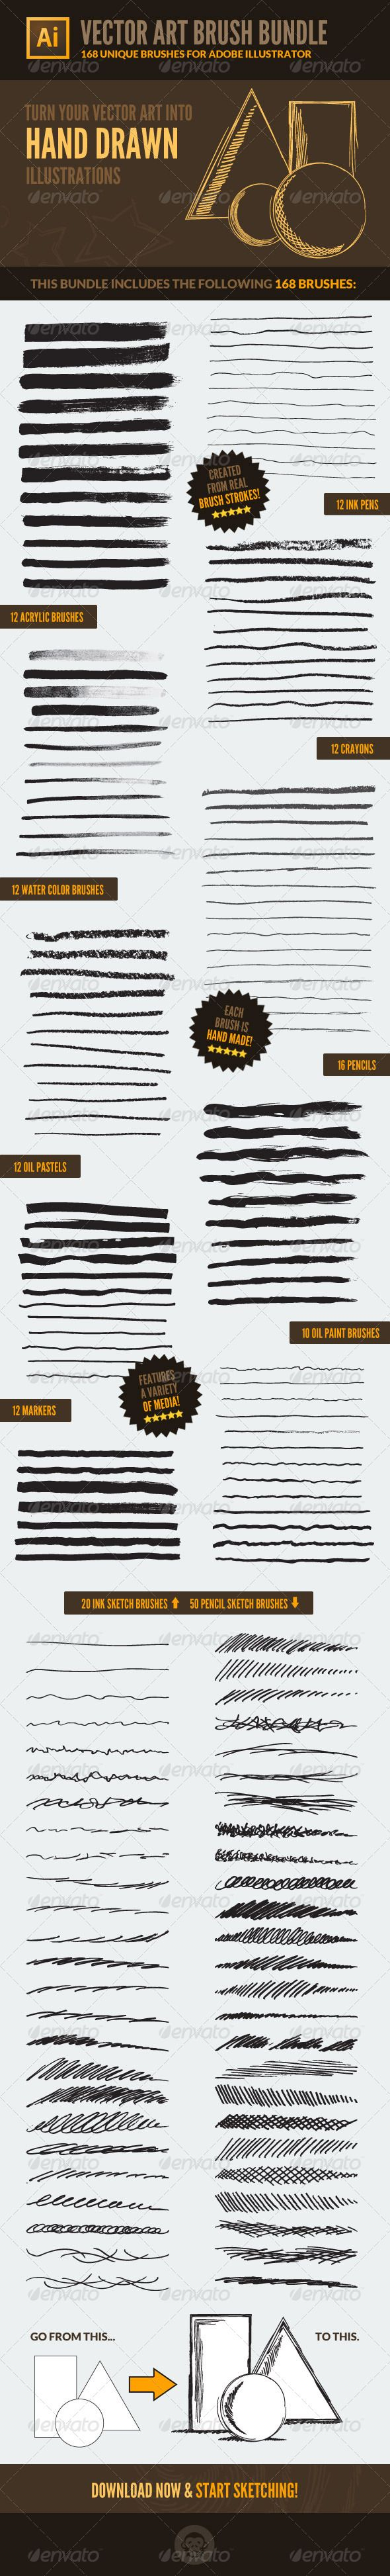 168 Vector Art Brushes - Bundle . Overview This set of brushes, for Adobe Illustrator, includes 10 different media libraries with 168 unique art brushes.